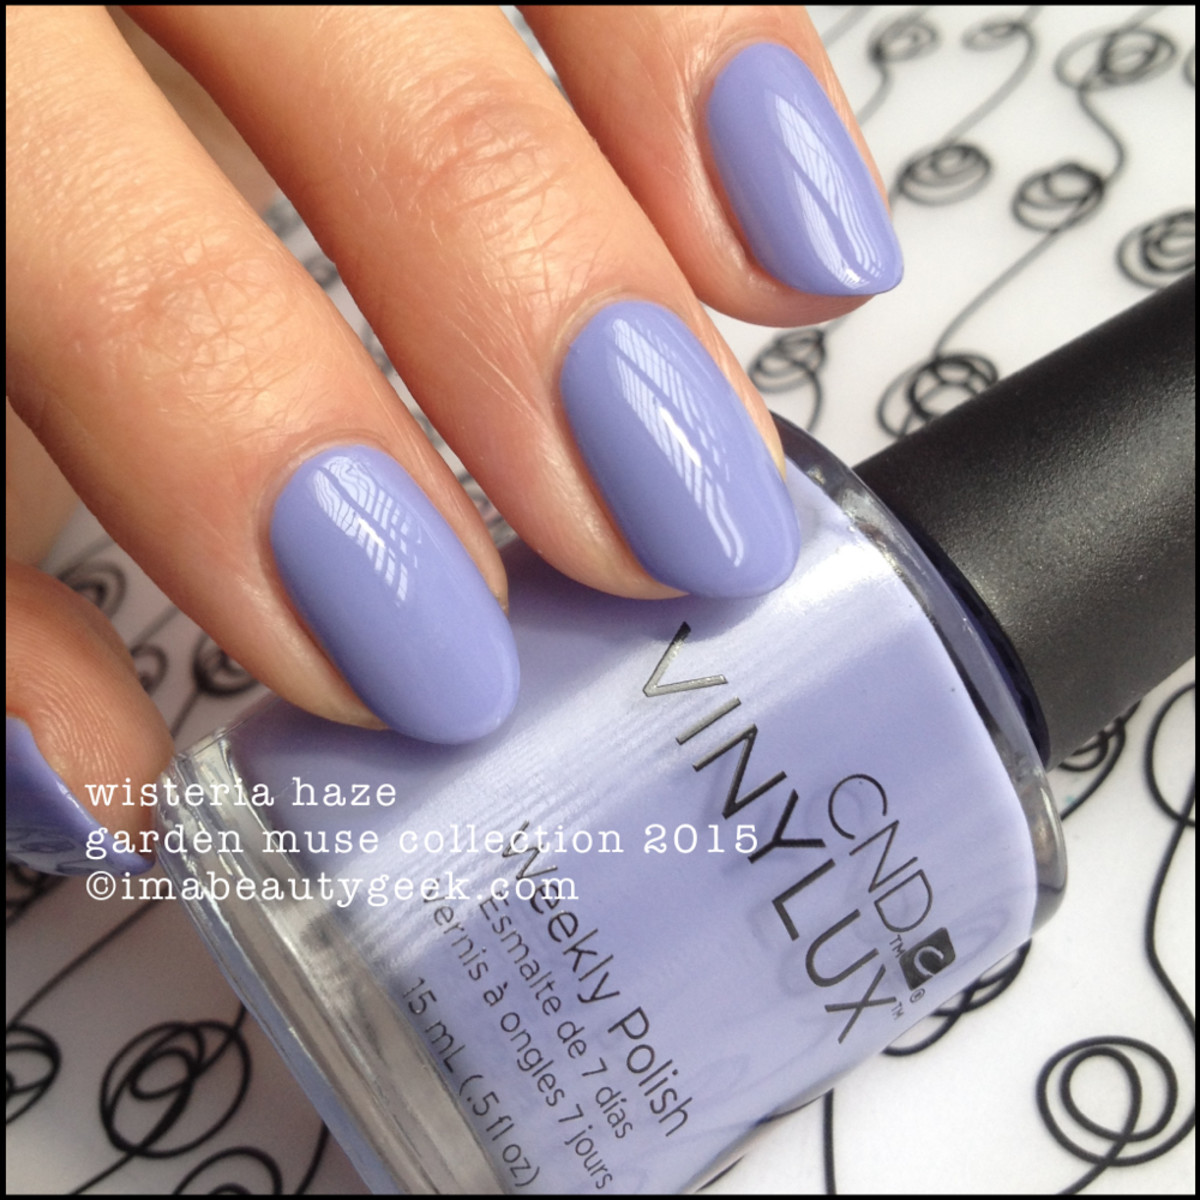 CND Vinylux Wisteria Haze Garden Muse Collection 2015